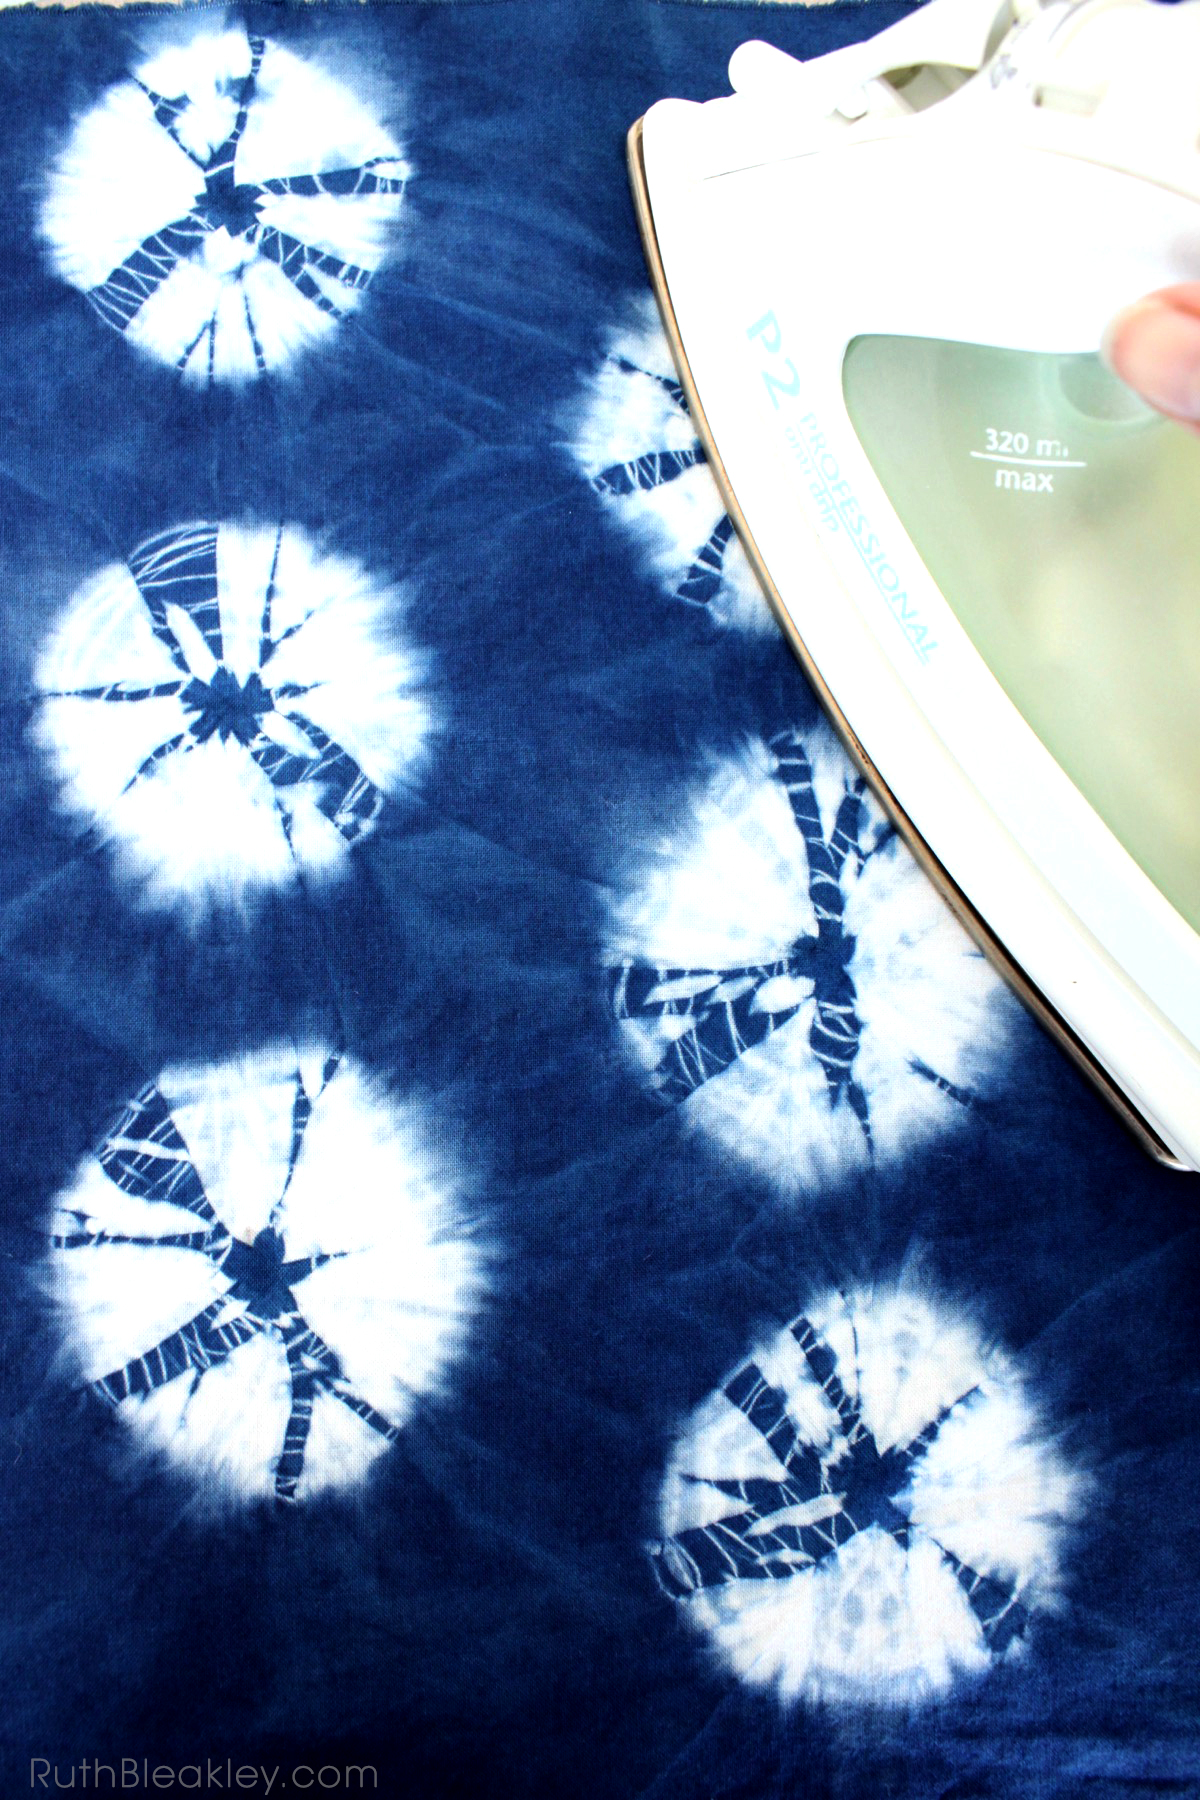 Making Bookcloth from Indigo Shibori Tie Dye - Ruth Bleakley - 2